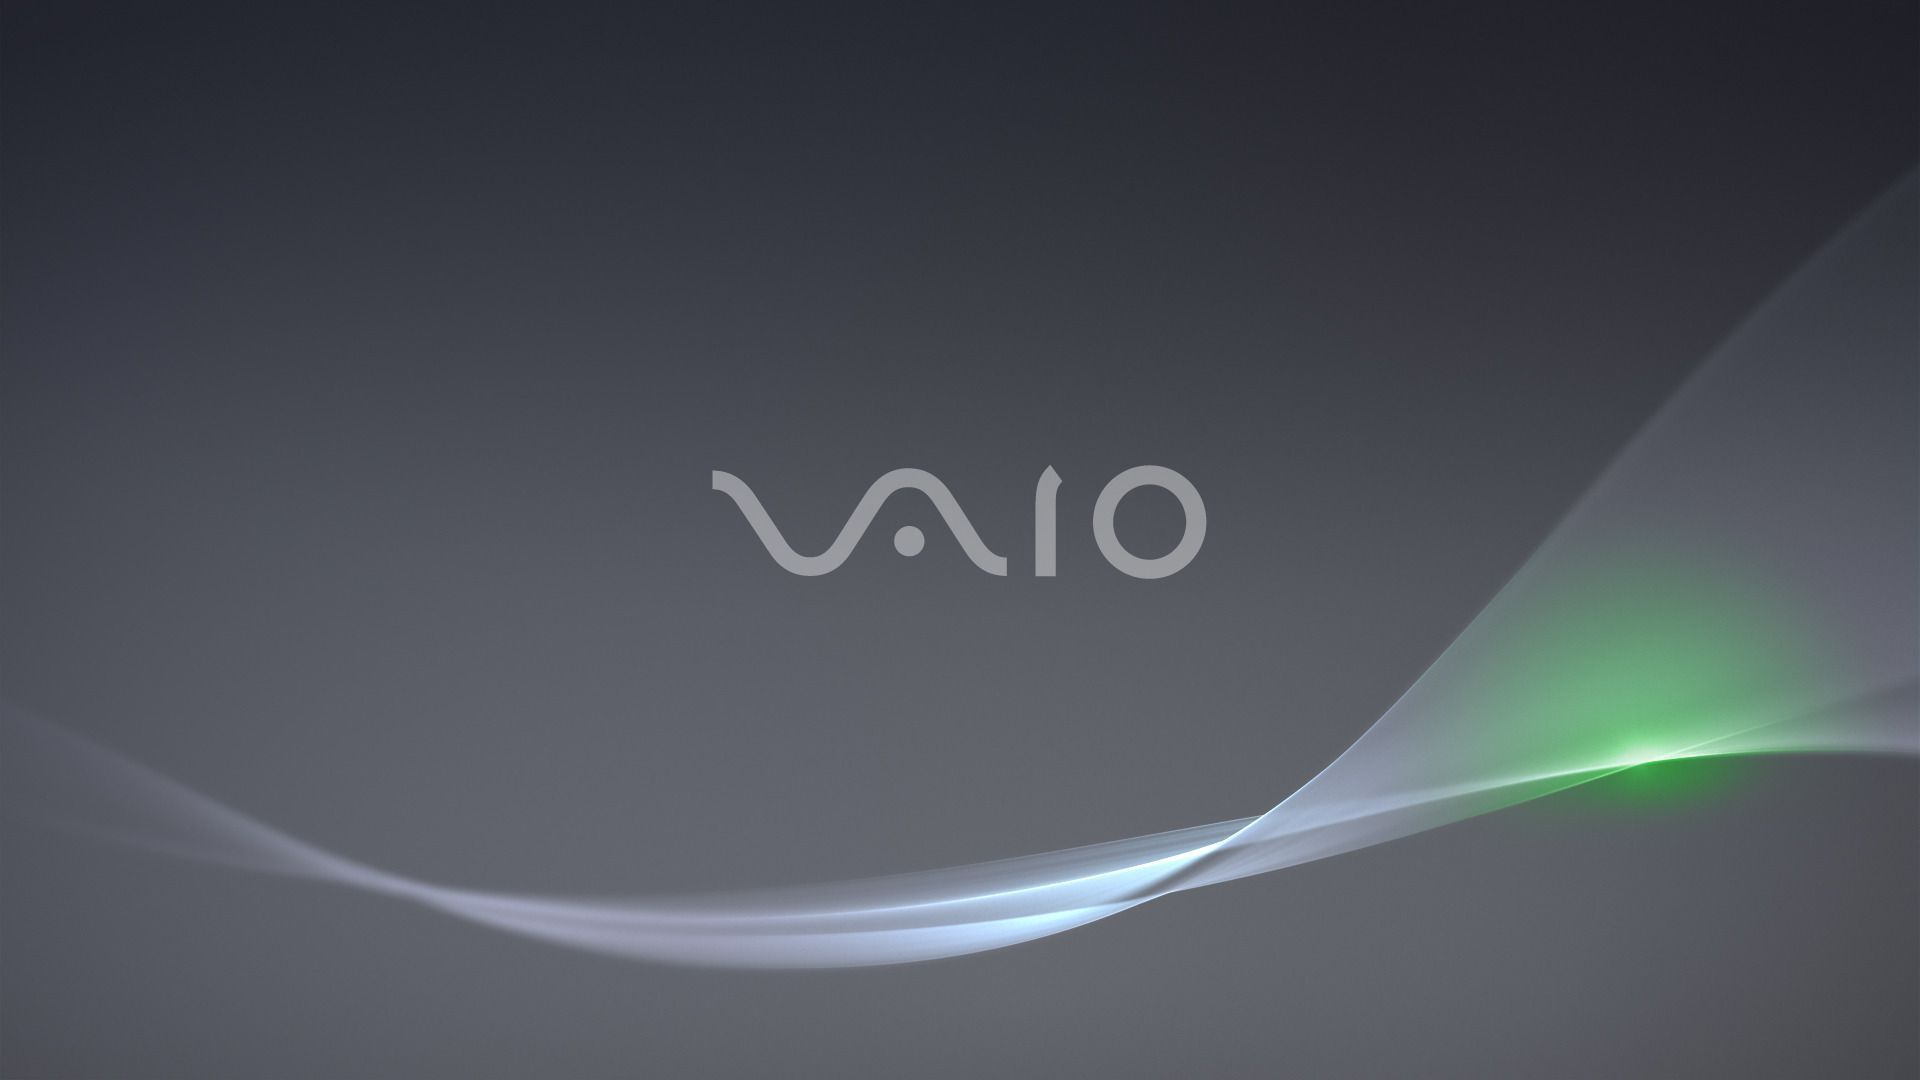 free technology logos wallpaper resolution 1920 x tags technology logos sony vaio